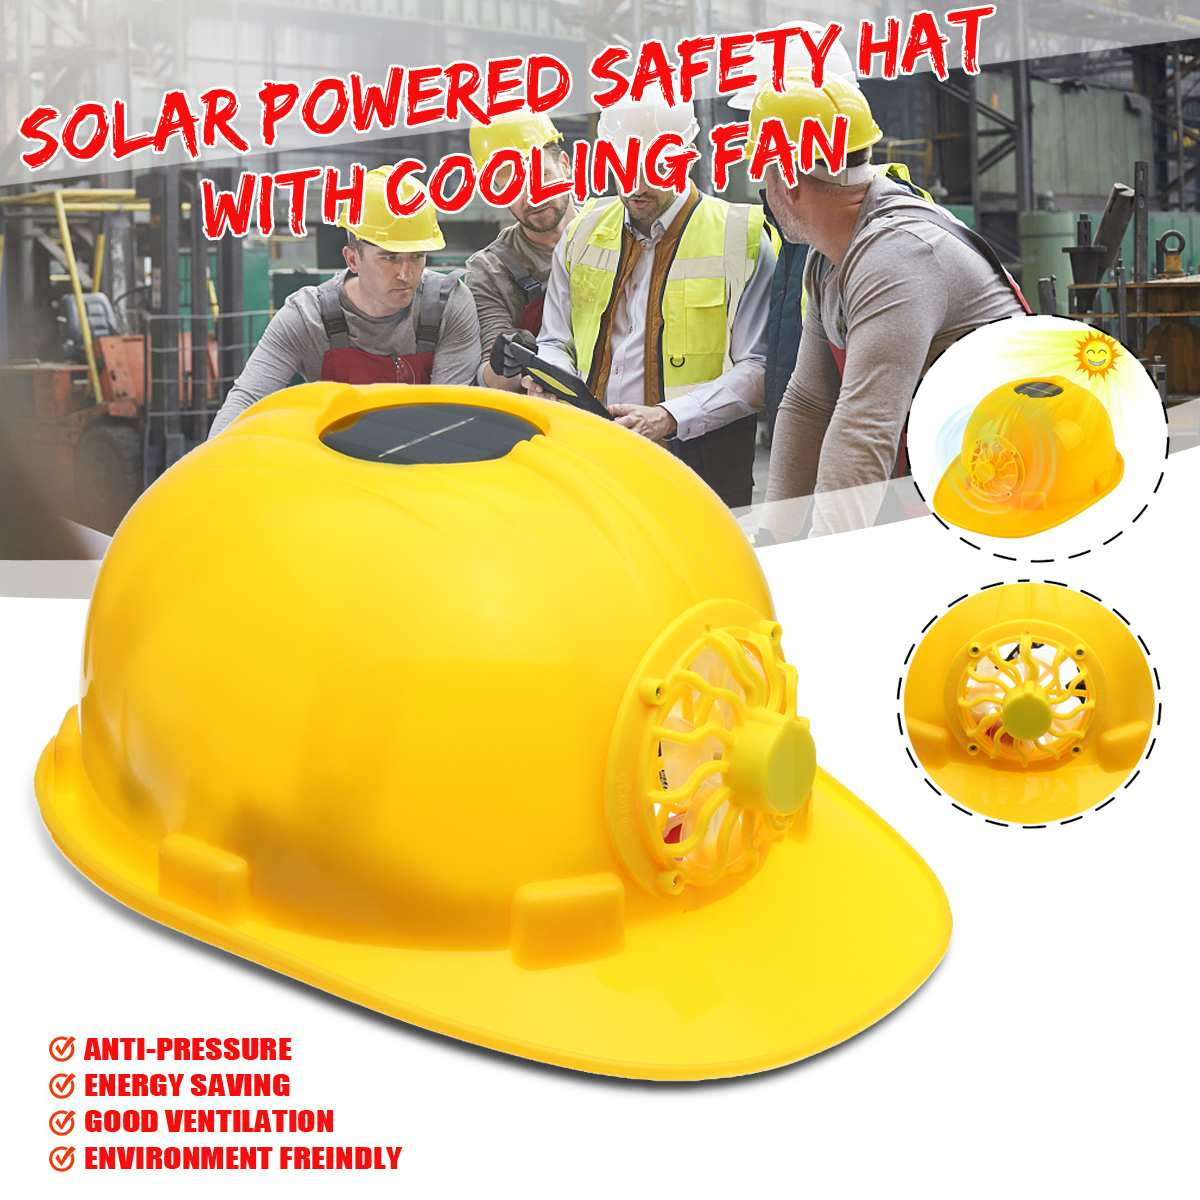 Yellow Solar Power Fan Helmet Outdoor Working Safety Hard Hat Construction Workplace ABS material Protective Cap PoweredYellow Solar Power Fan Helmet Outdoor Working Safety Hard Hat Construction Workplace ABS material Protective Cap Powered